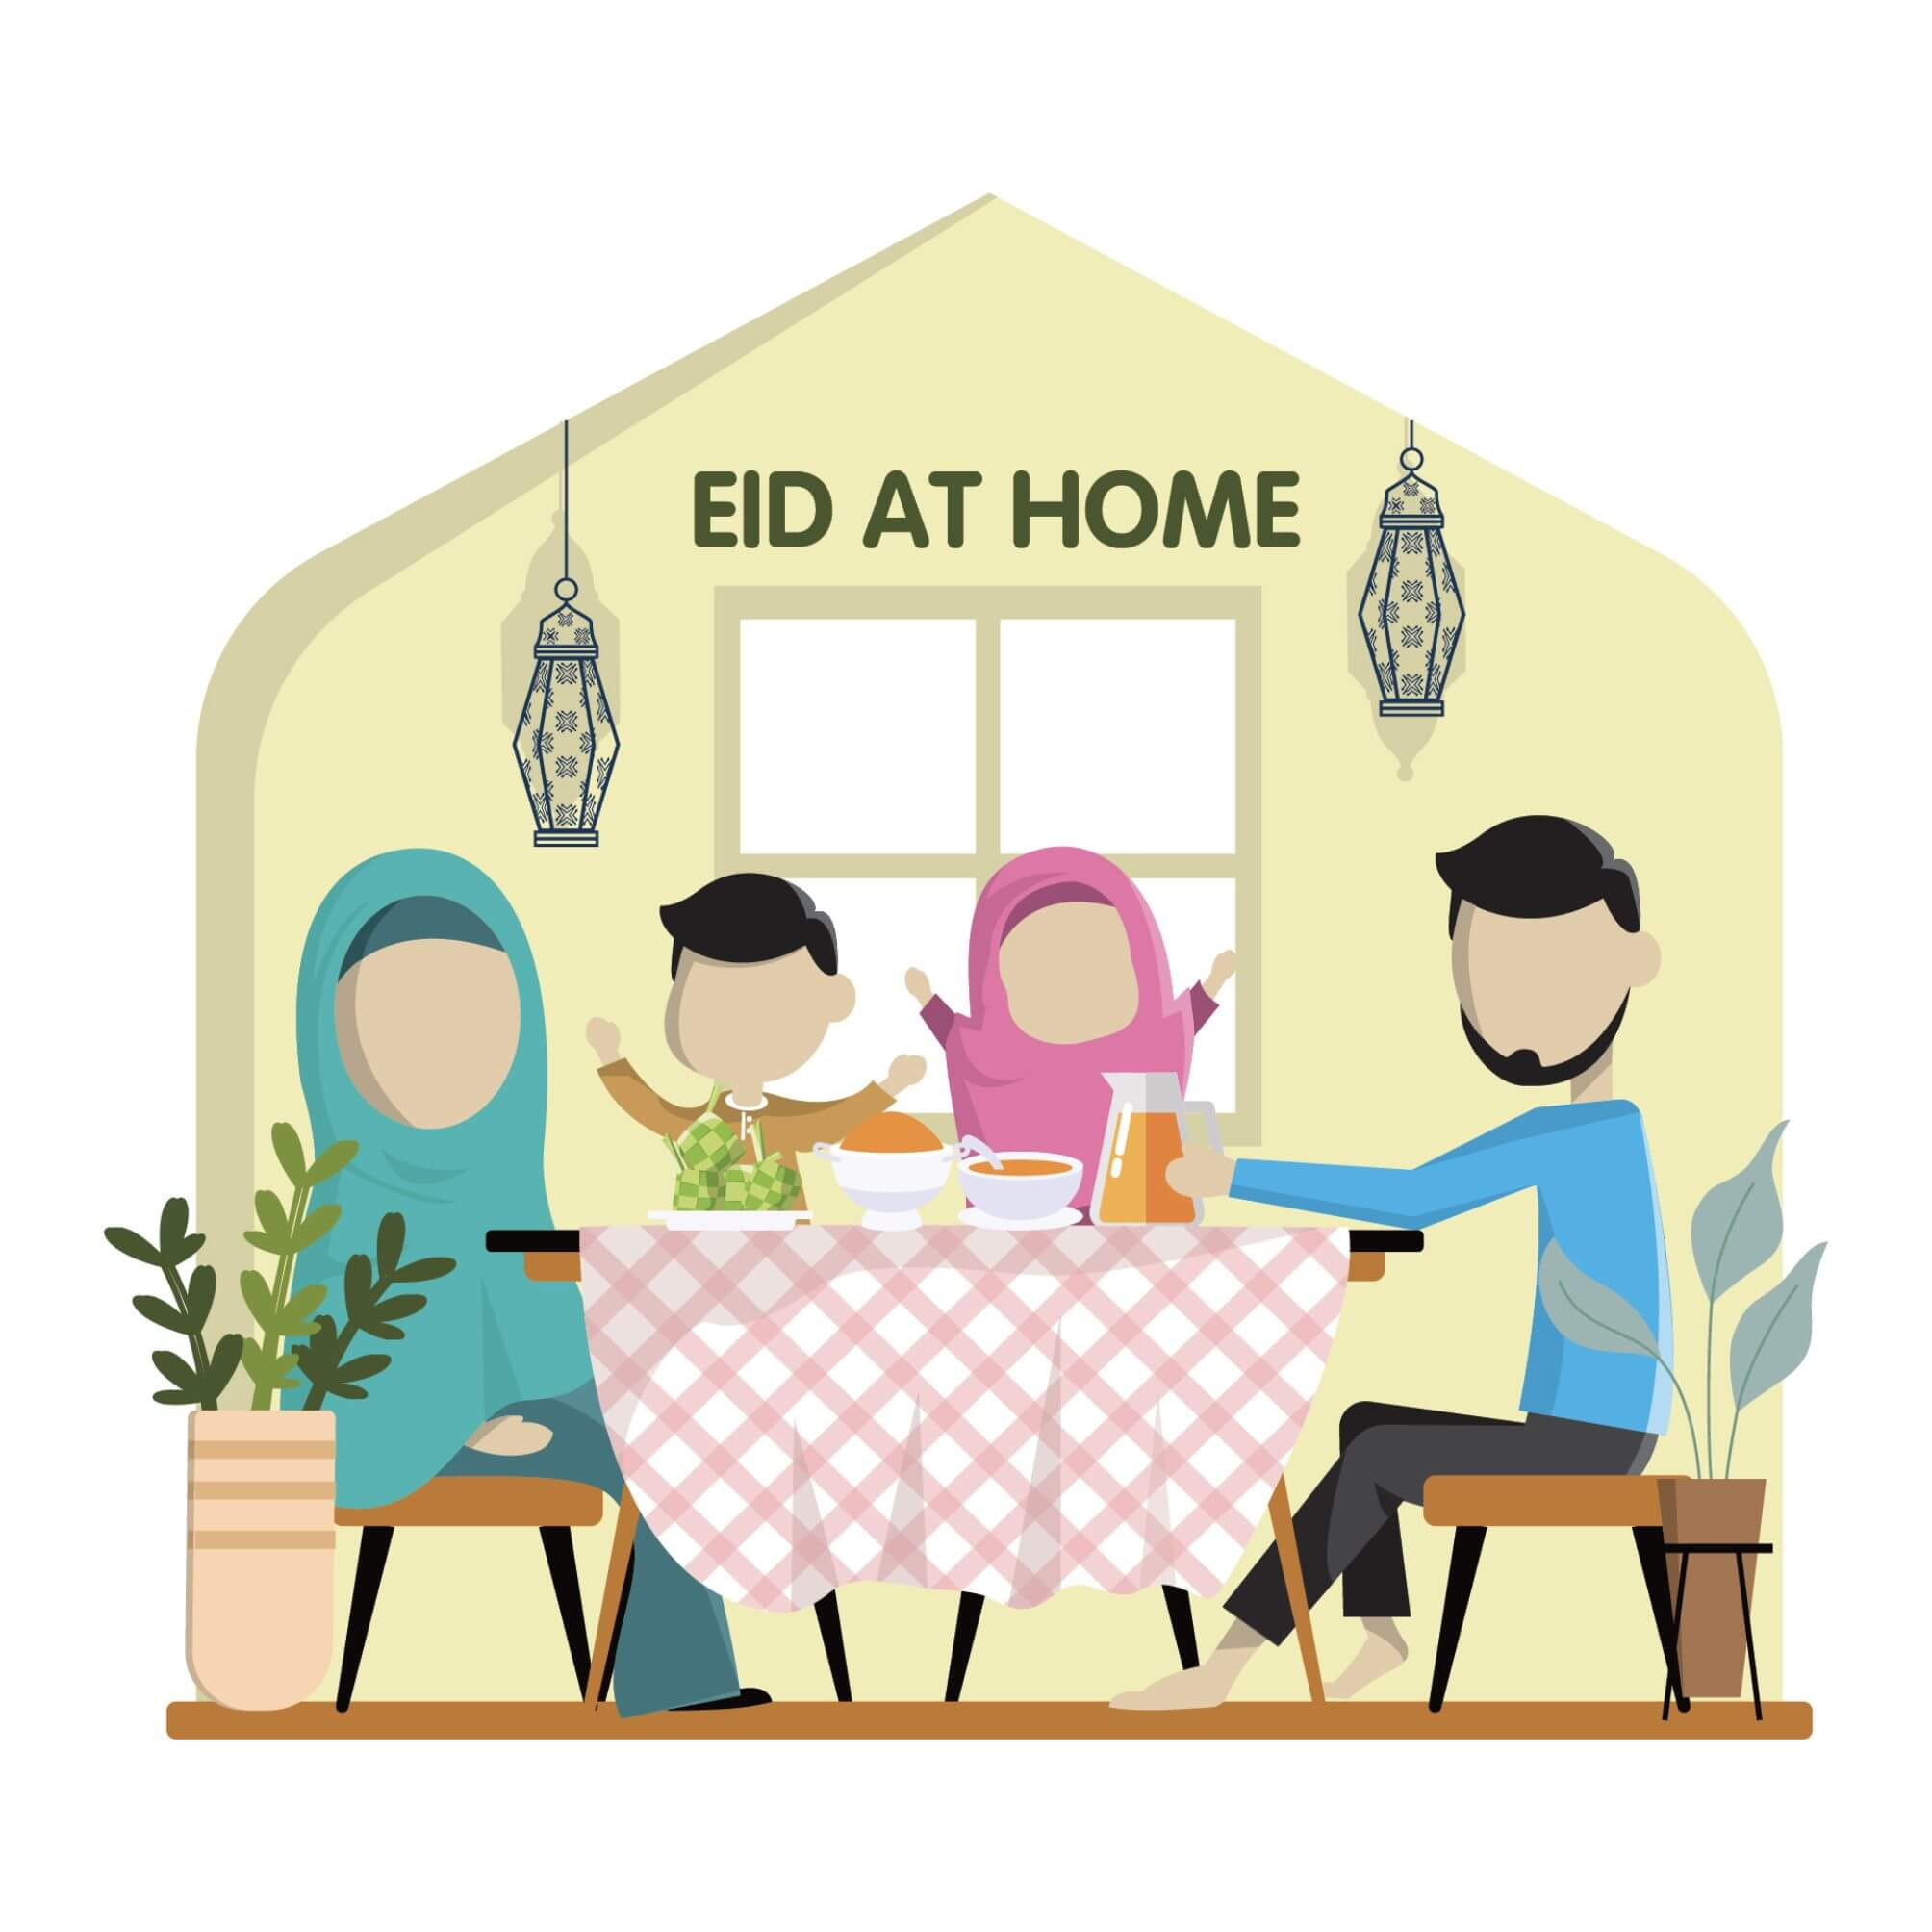 Ways to make your Eid day special at home